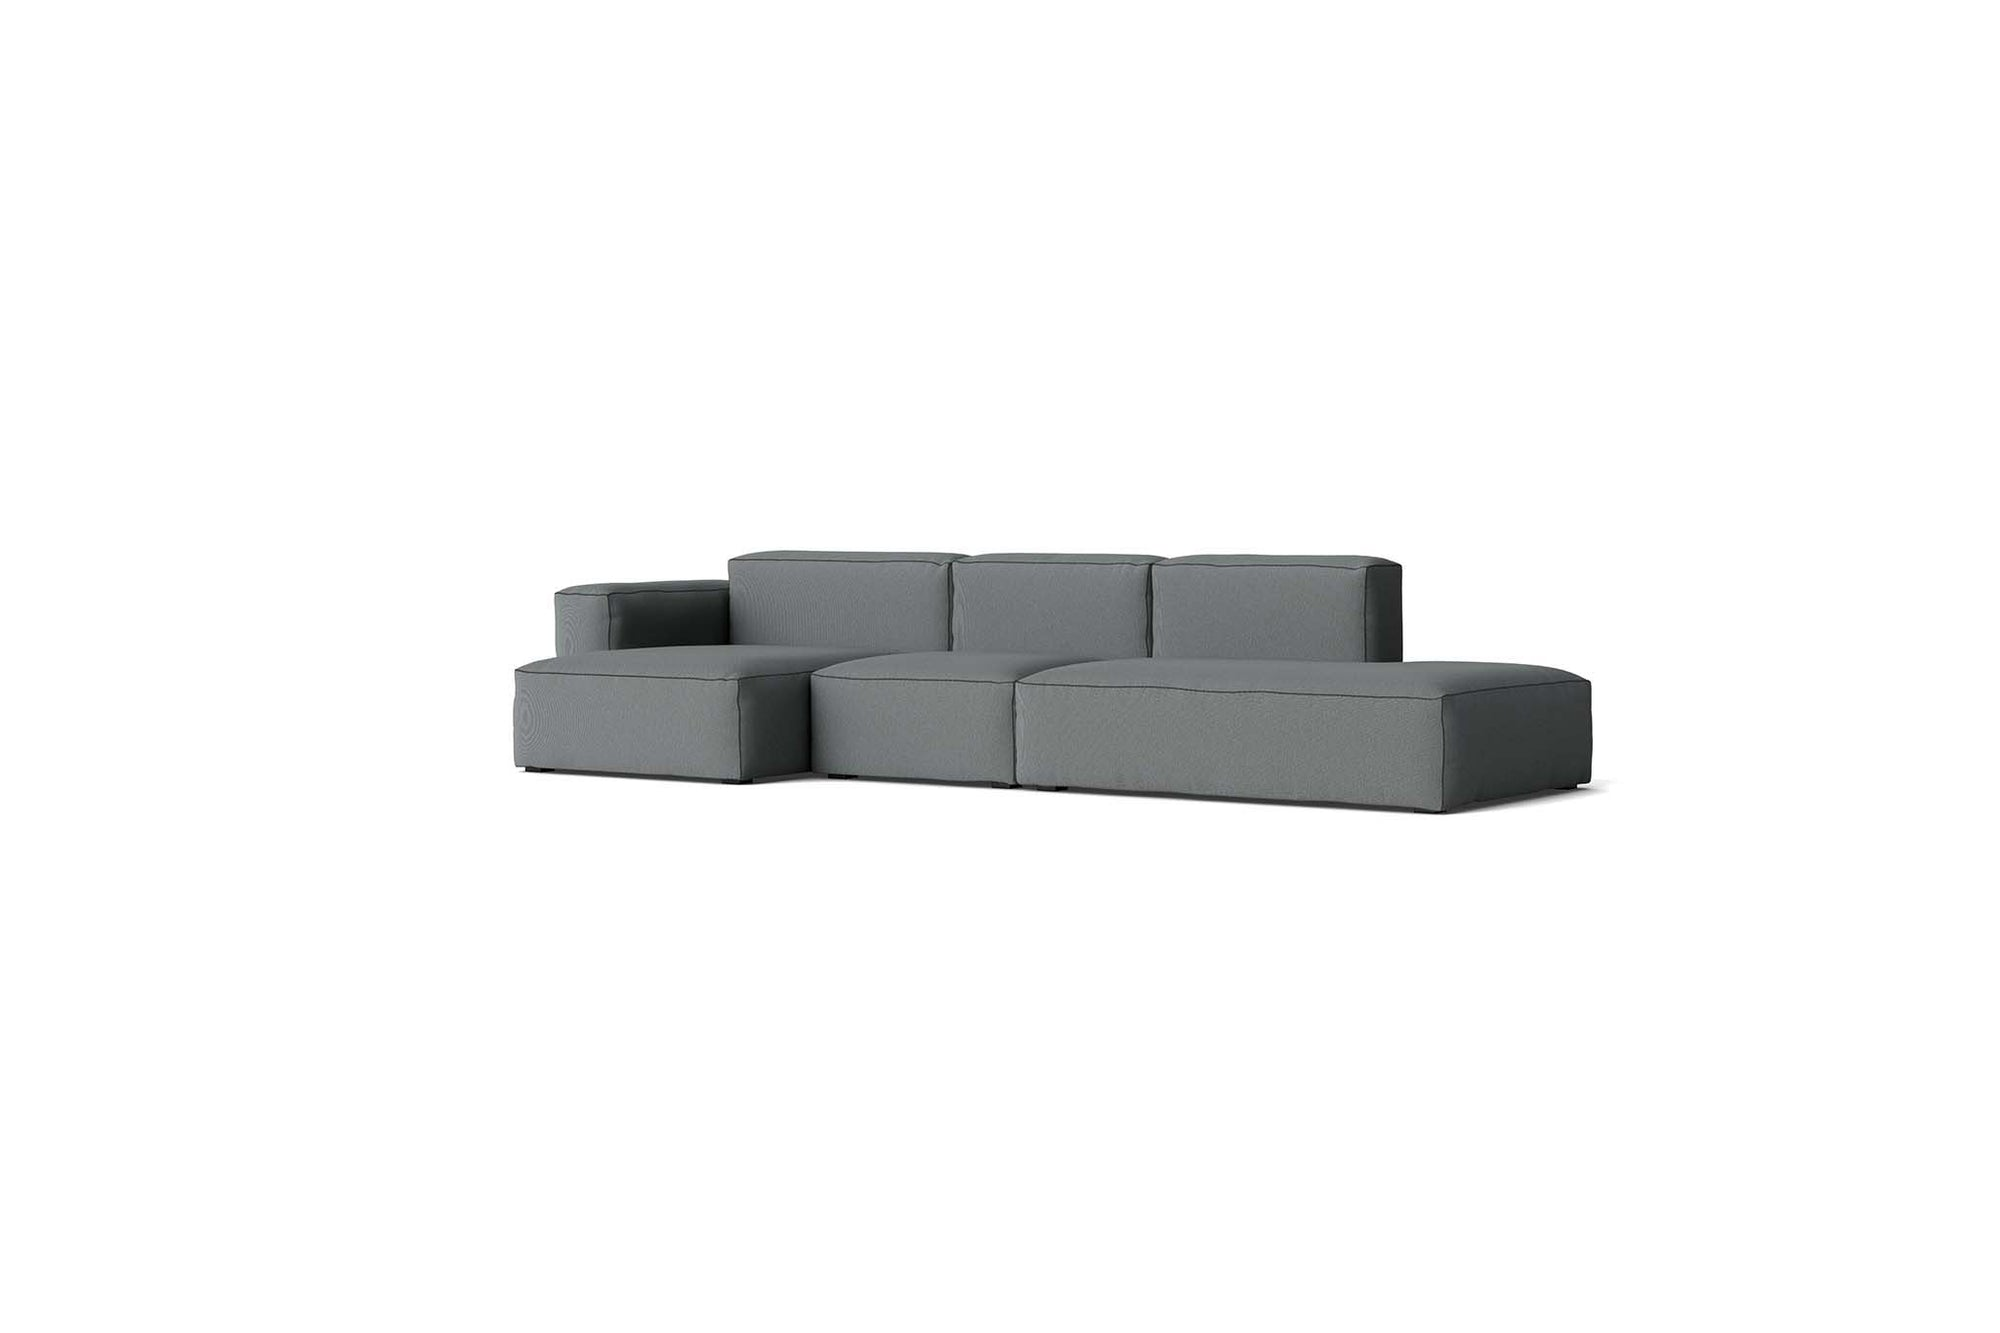 HAY - Mags Soft Low Sofa - 3 Seater - Combination 4 with Left Low Armrest